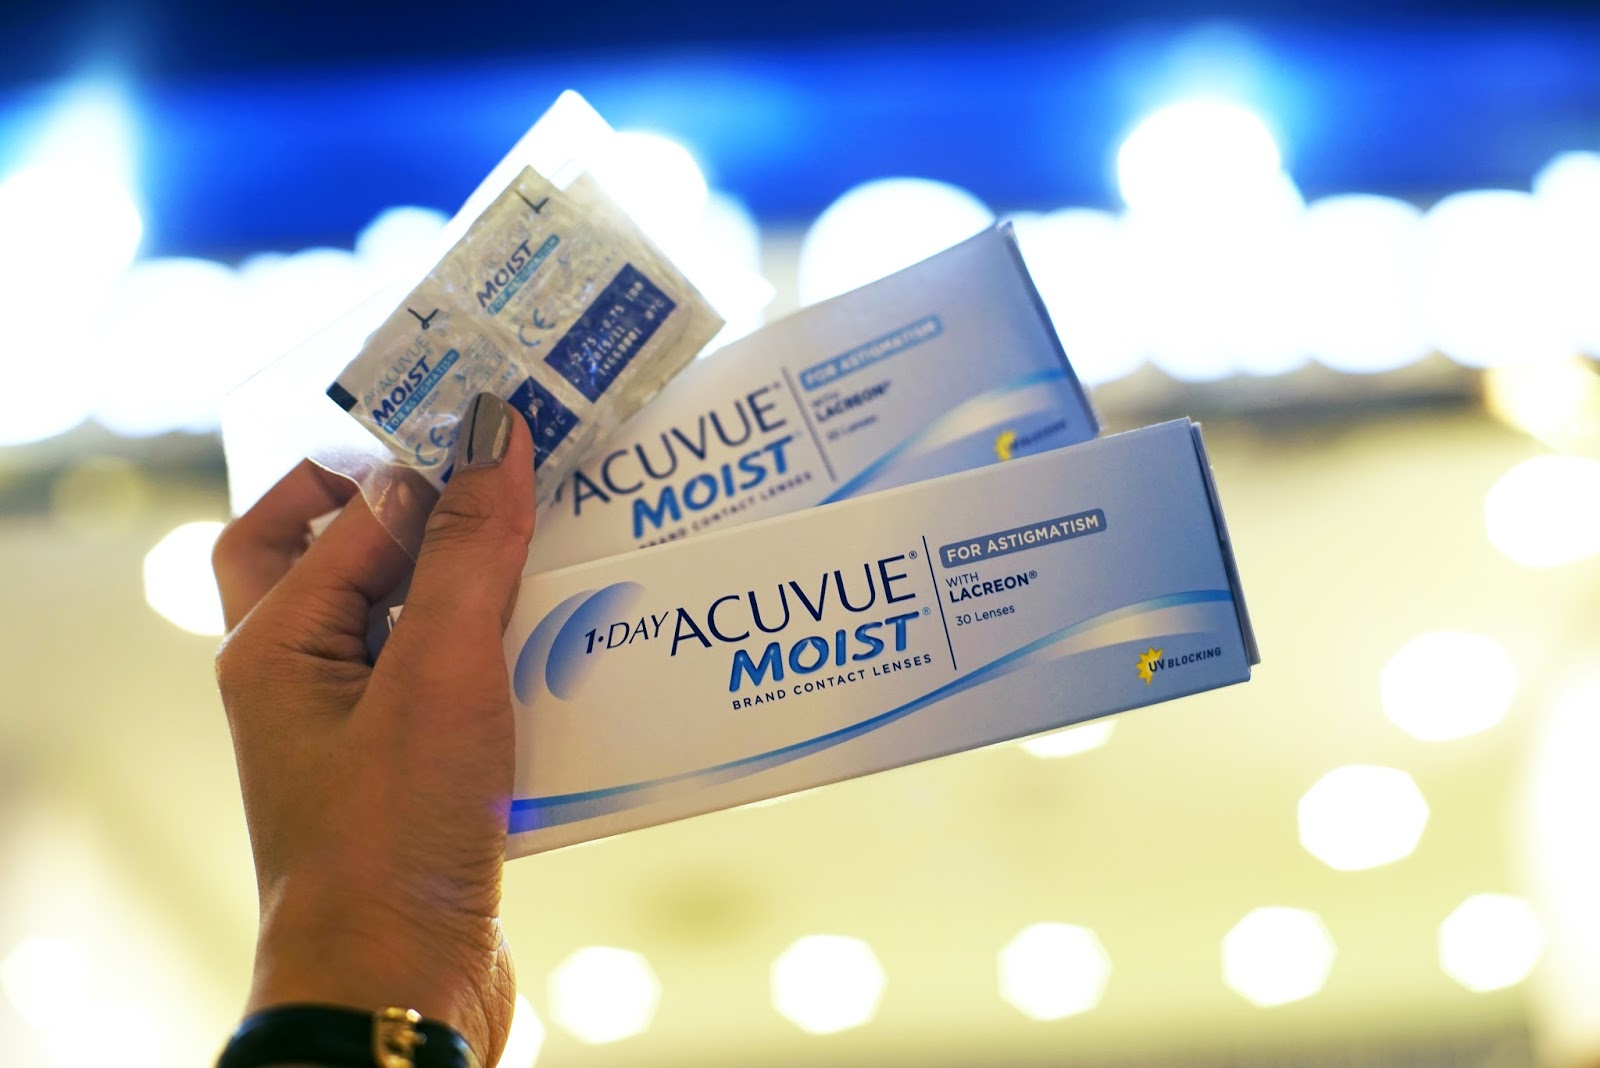 Sample store acuvue lens viviantians recalling back in the days when i tried out my very first pair of contact lenses i was told i had to round up my degree by 05 because soft lenses for nvjuhfo Image collections